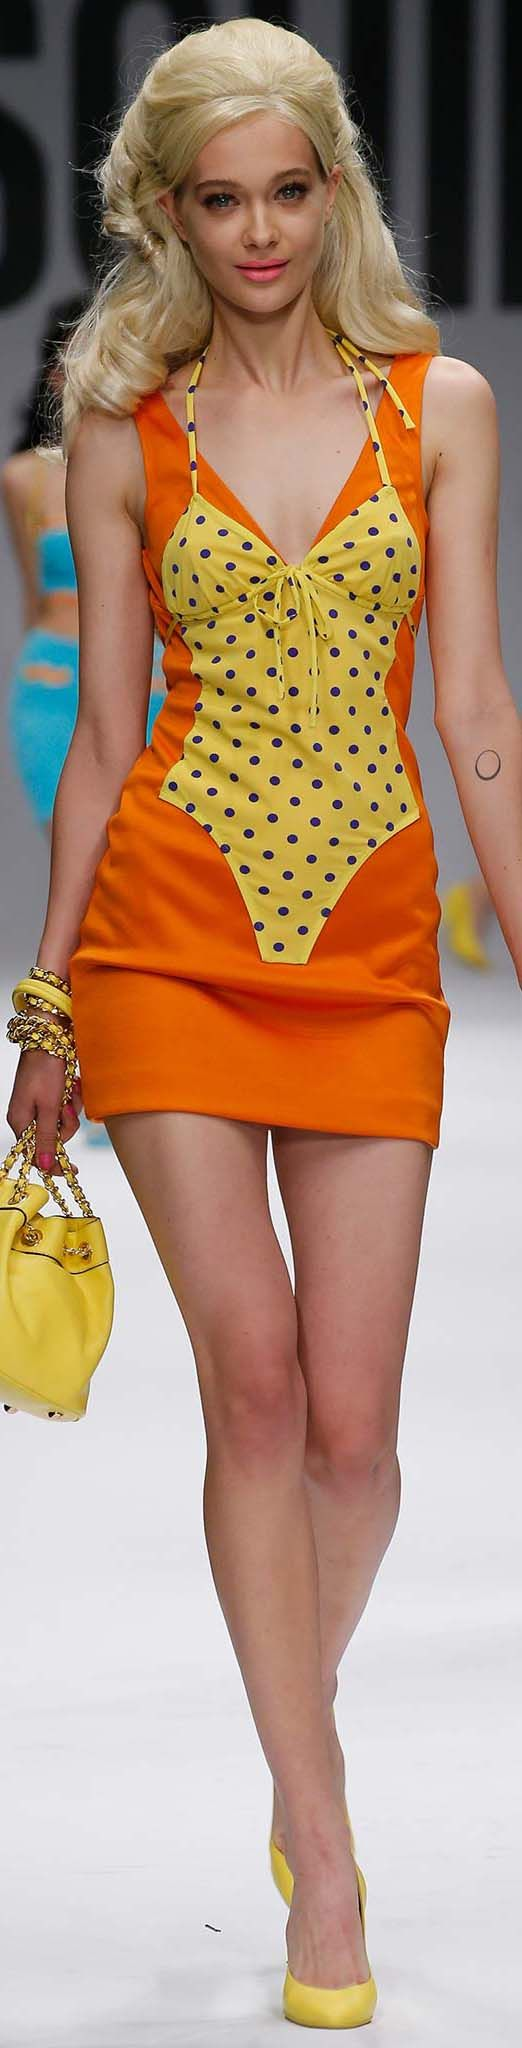 #Moschino S/S 2015 Milan Fashion Week Collection #milanfashionweek #fashionweek #fashionshow #runway